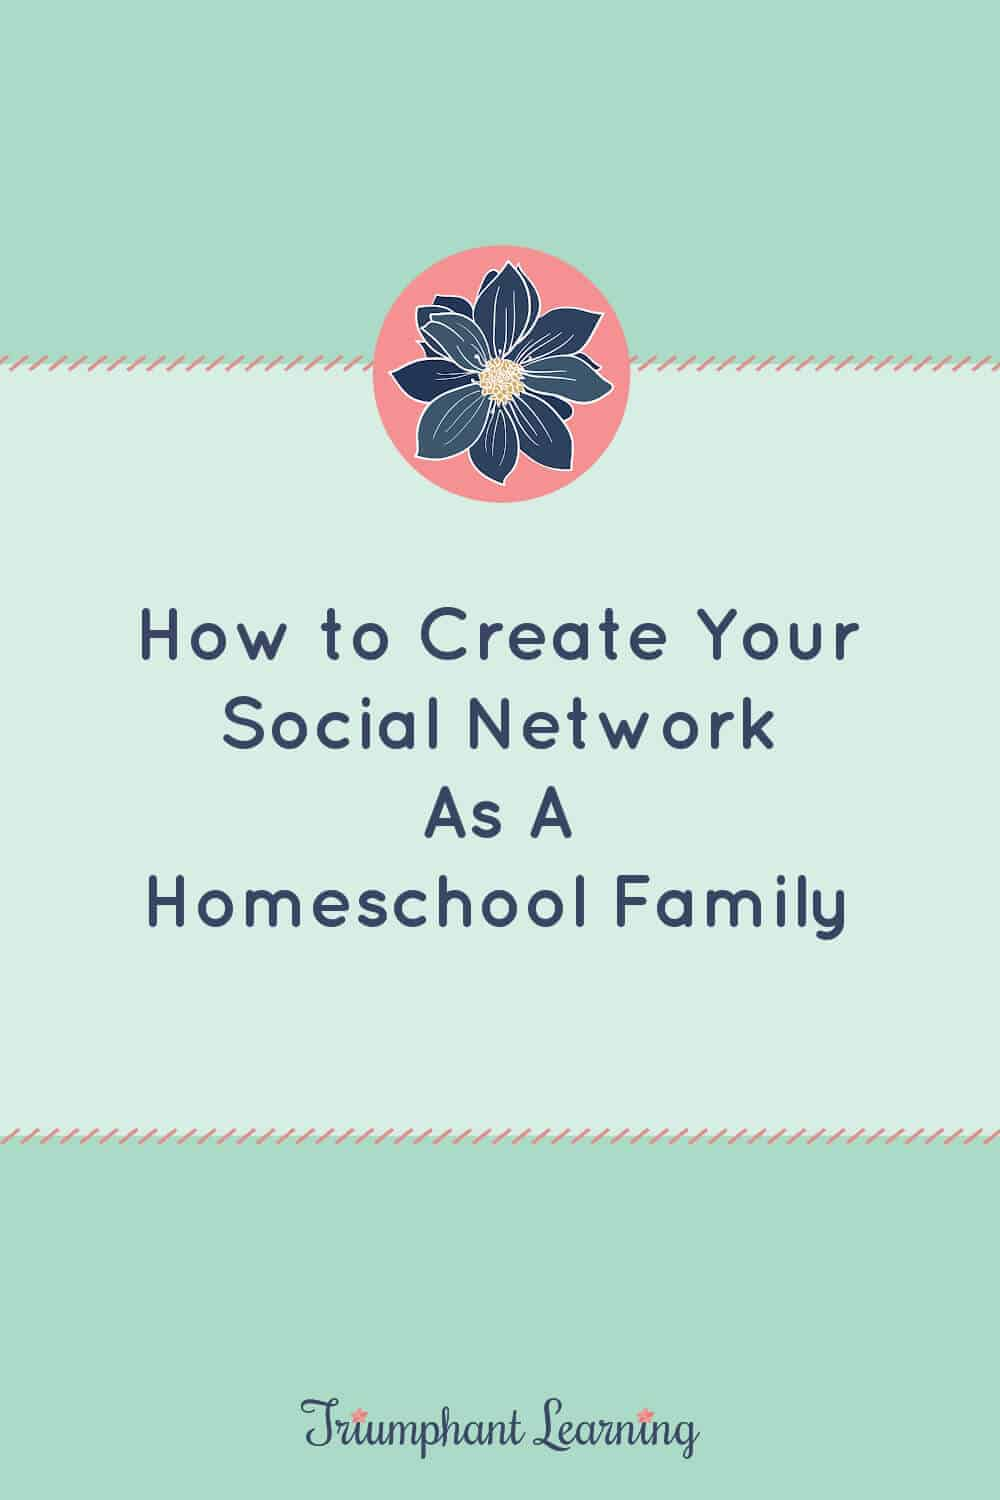 Learn about the benefits and challenges of homeschool socialization and ways you can create your social network as a homeschool family. via @TriLearning